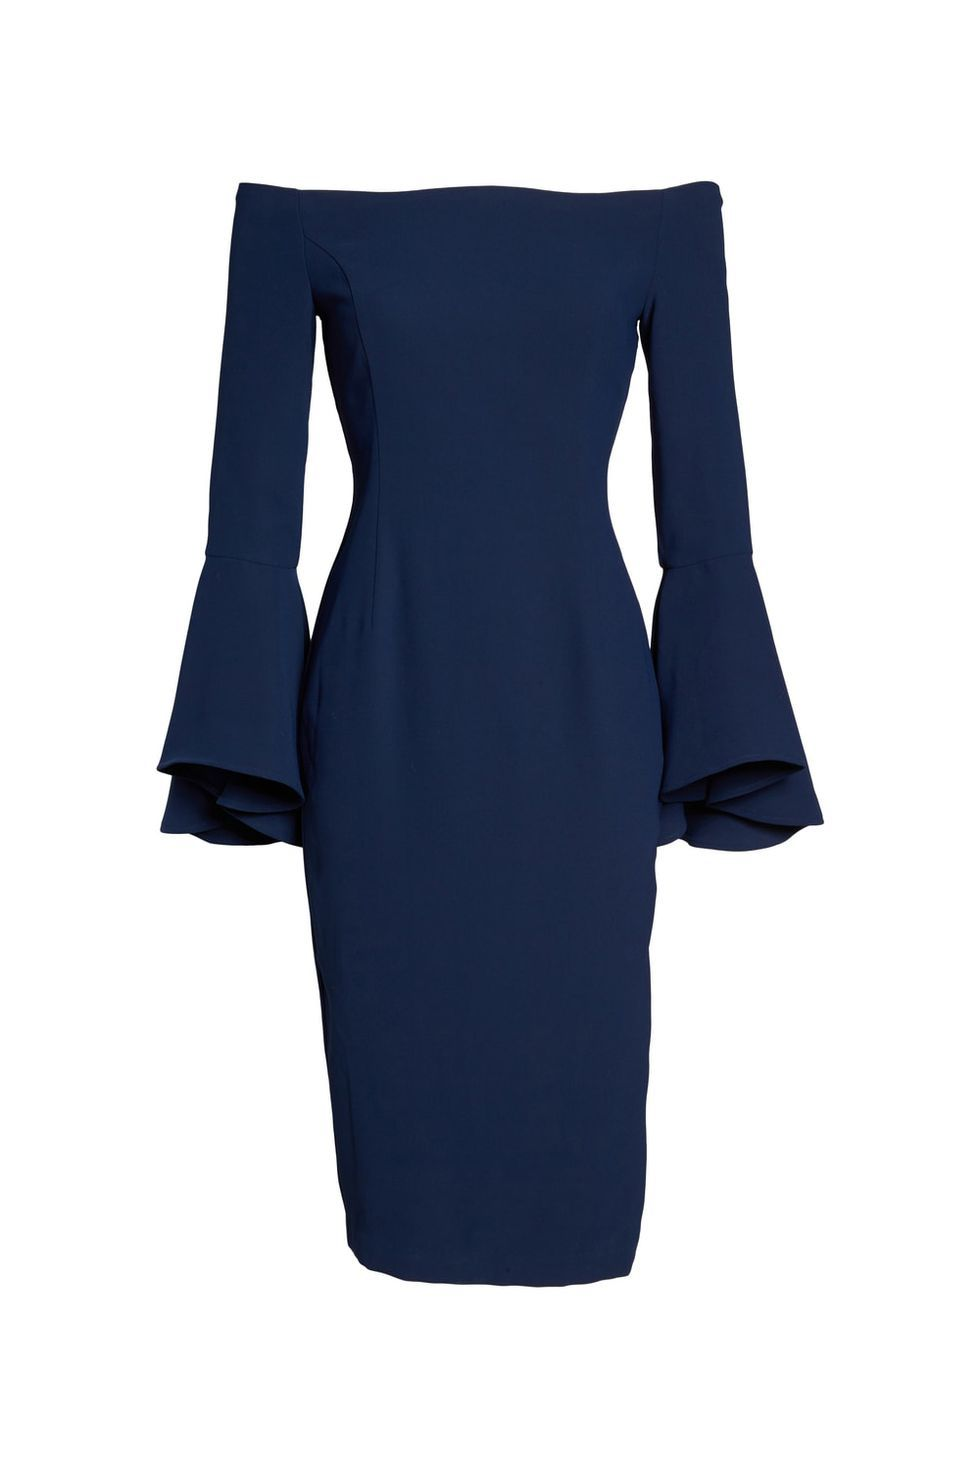 11 Cocktail Dresses That Are Ideal For A Semi Formal Summer Wedding Cocktail Dress Wedding Navy Cocktail Dress Dresses To Wear To A Wedding [ 1470 x 980 Pixel ]